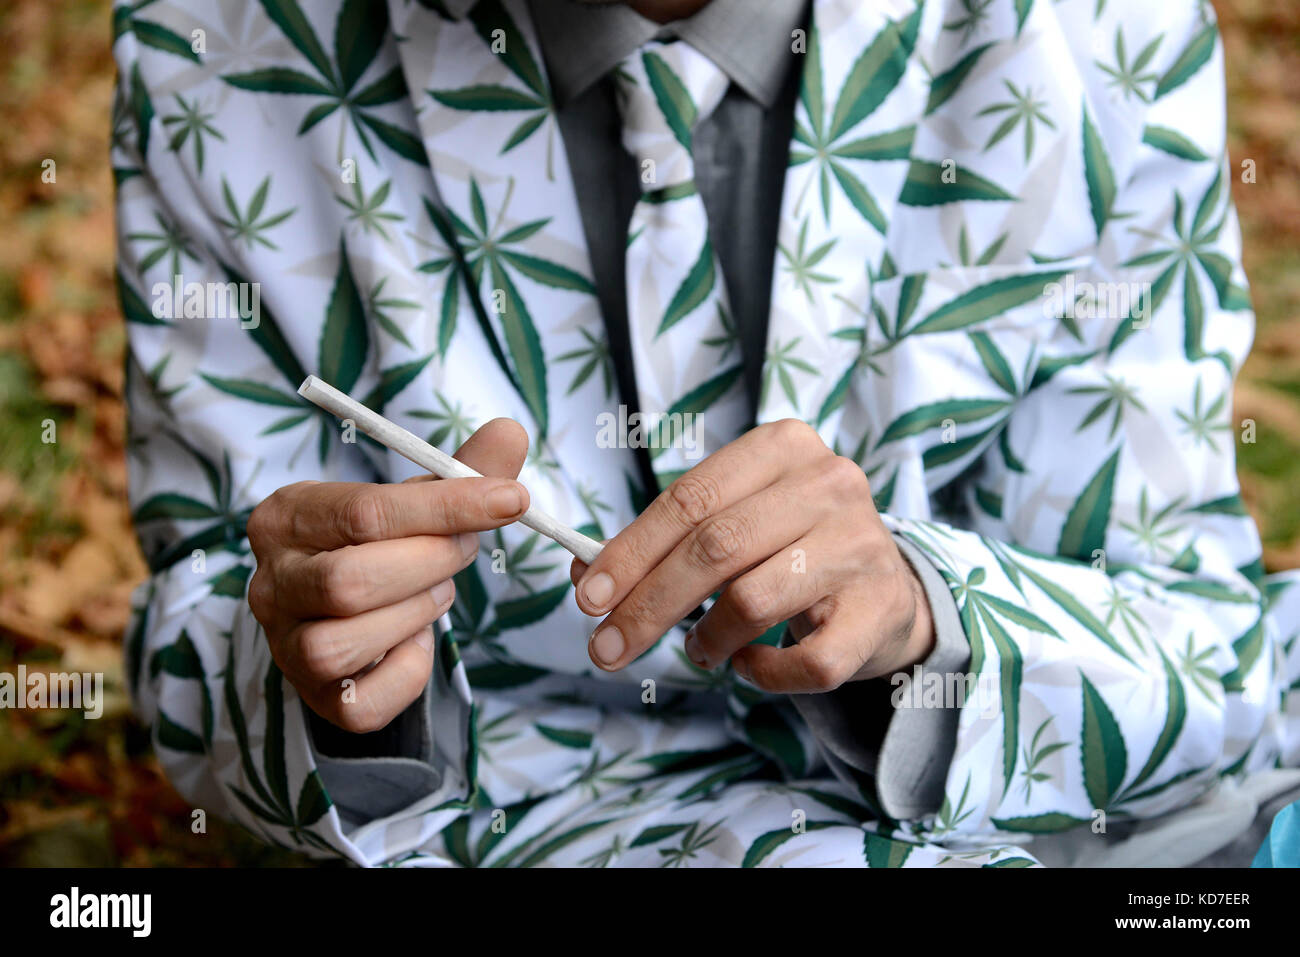 Cannabis Patients Alliance: Joint Drugs Stock Photos & Joint Drugs Stock Images